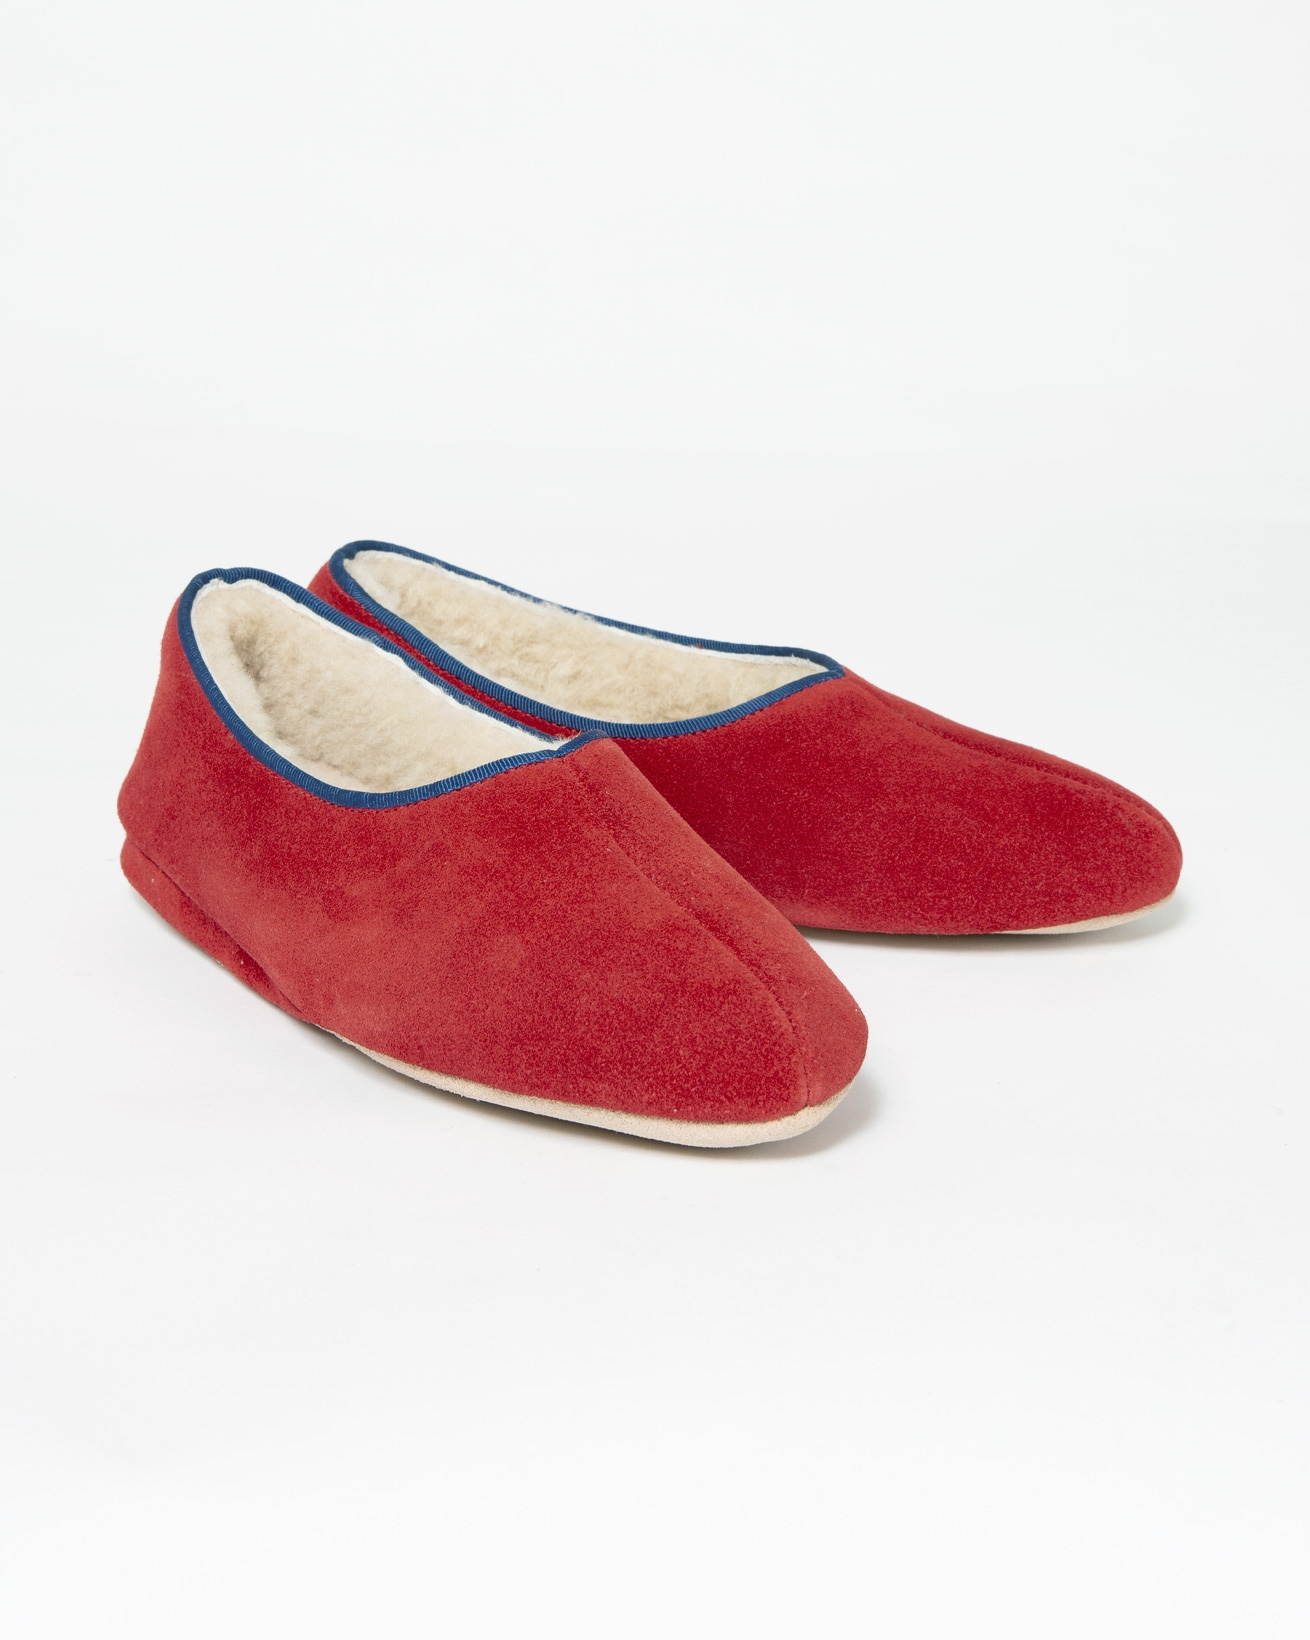 Ladies Ayr Slipper - Size 4 - Red/Blue